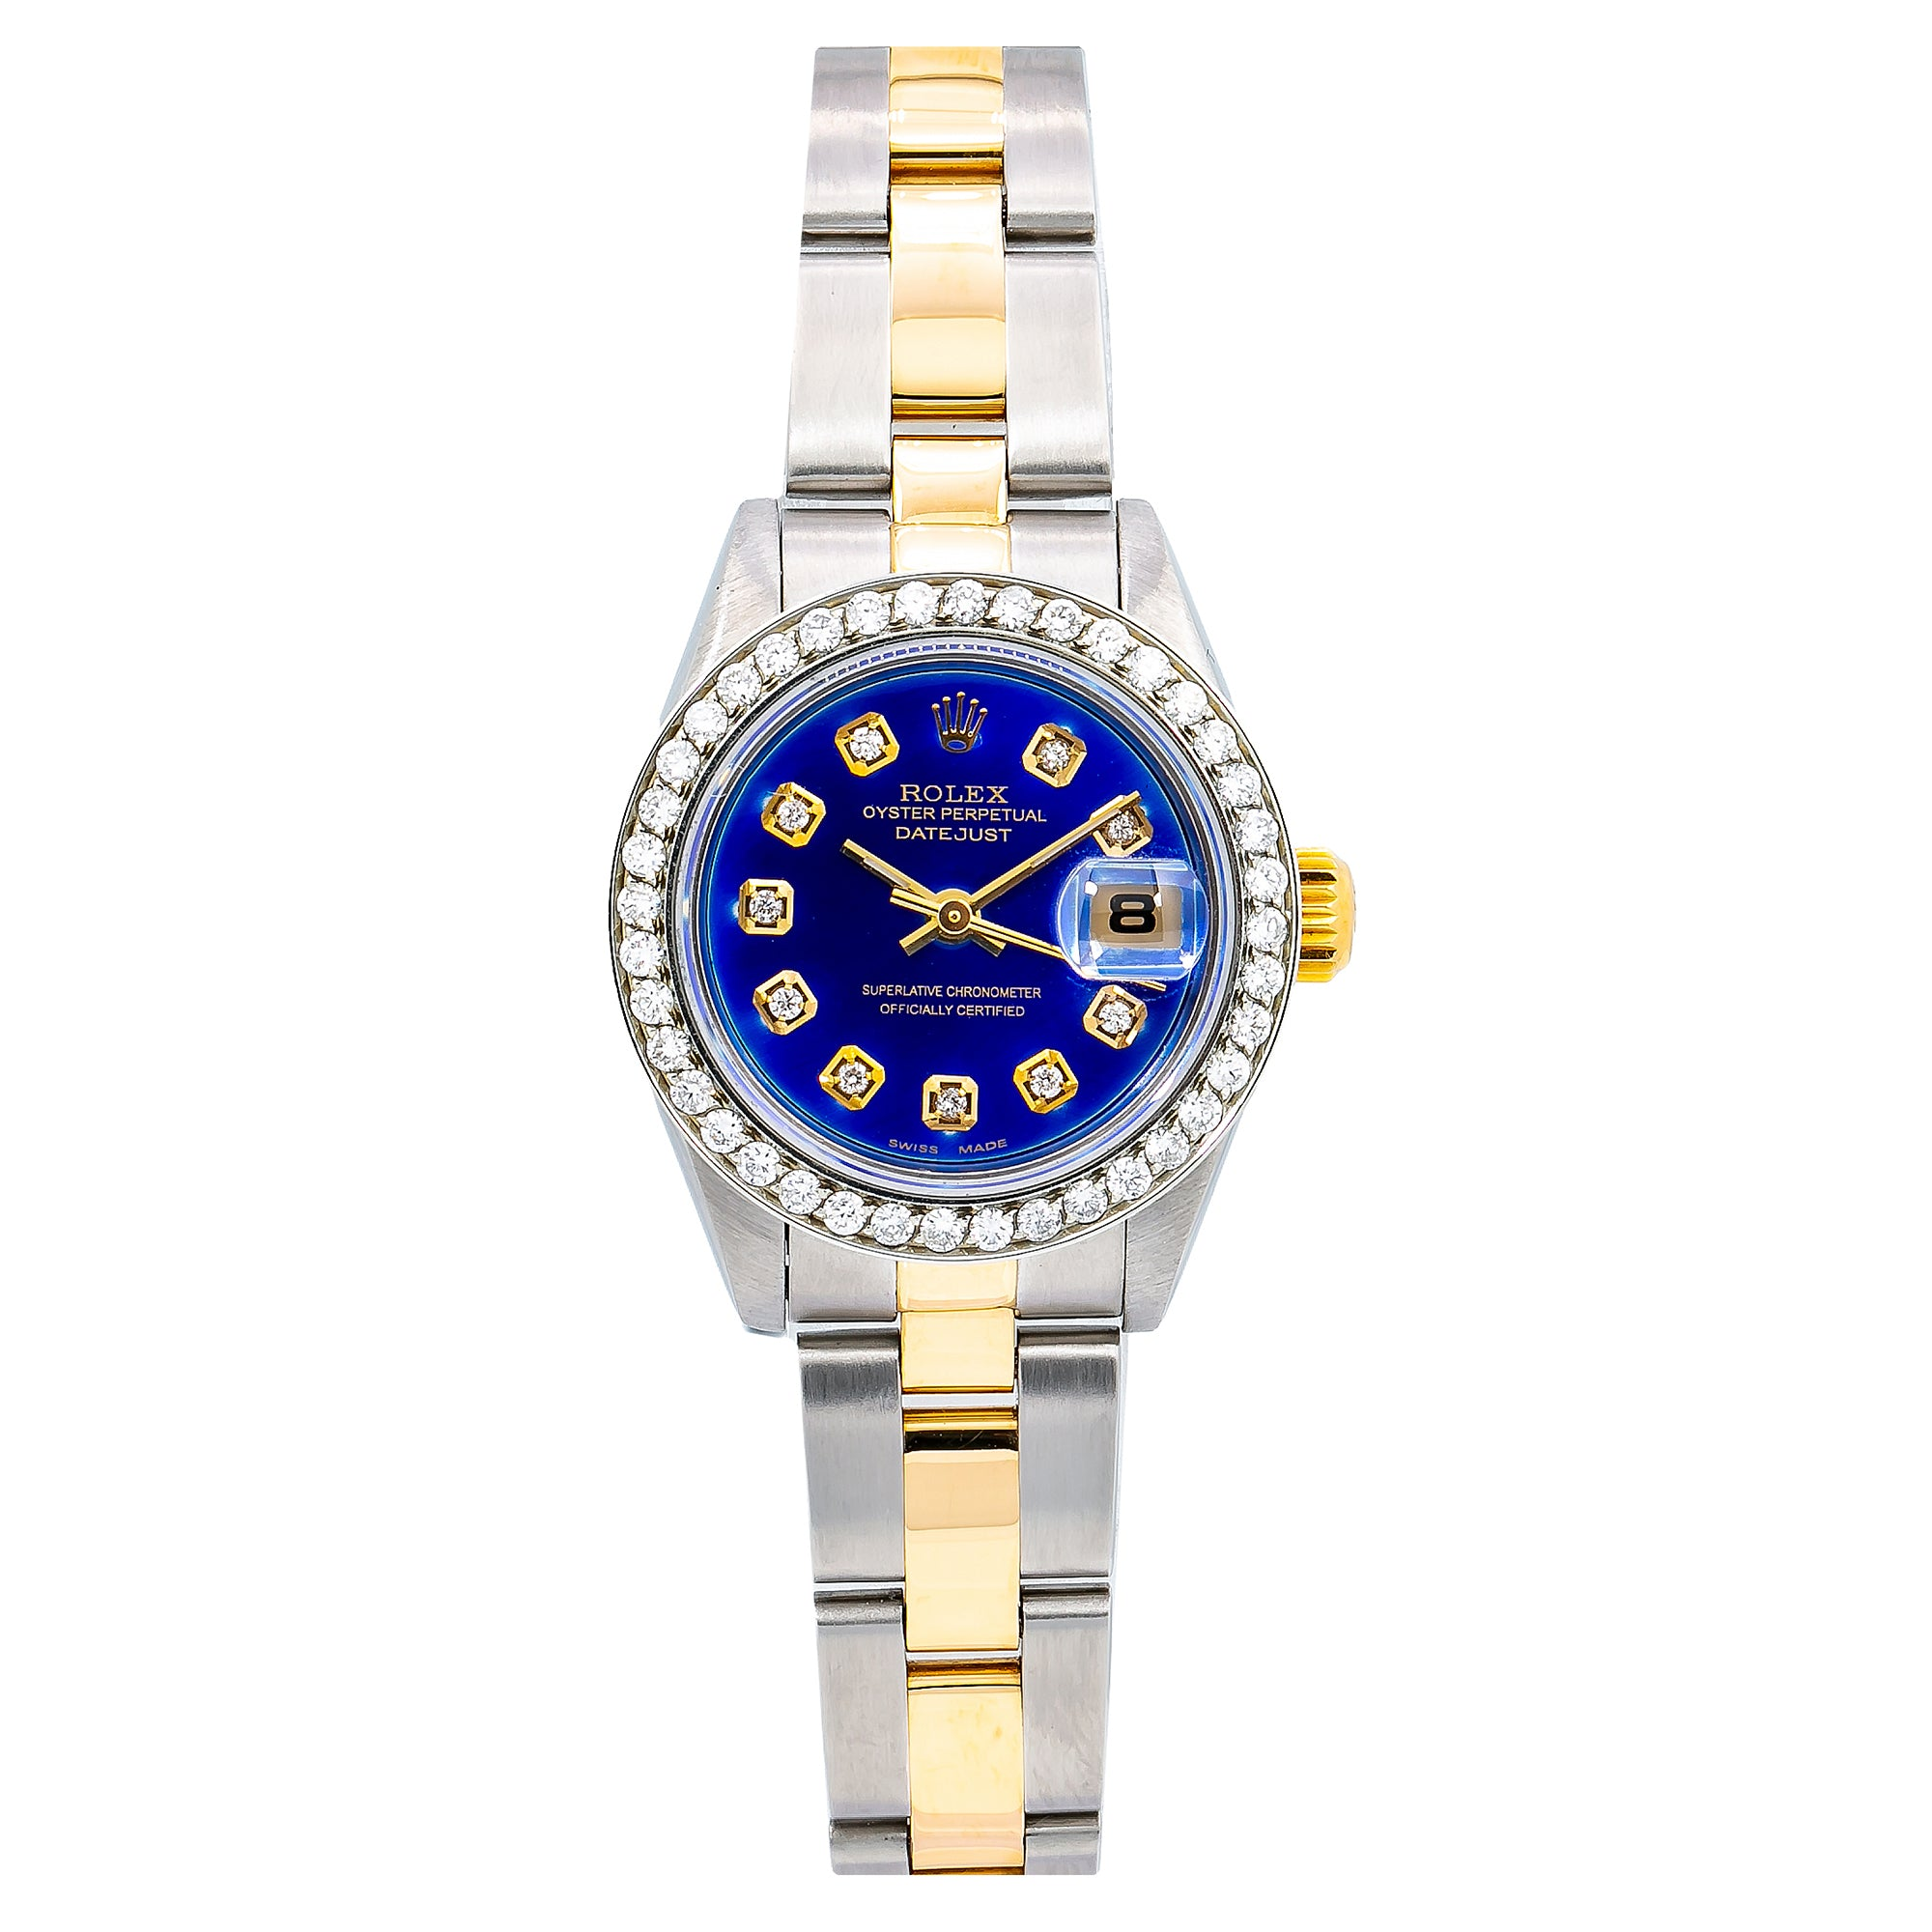 Rolex Lady-Datejust 79173 26MM Blue Diamond Dial With Two Tone Oyster Bracelet